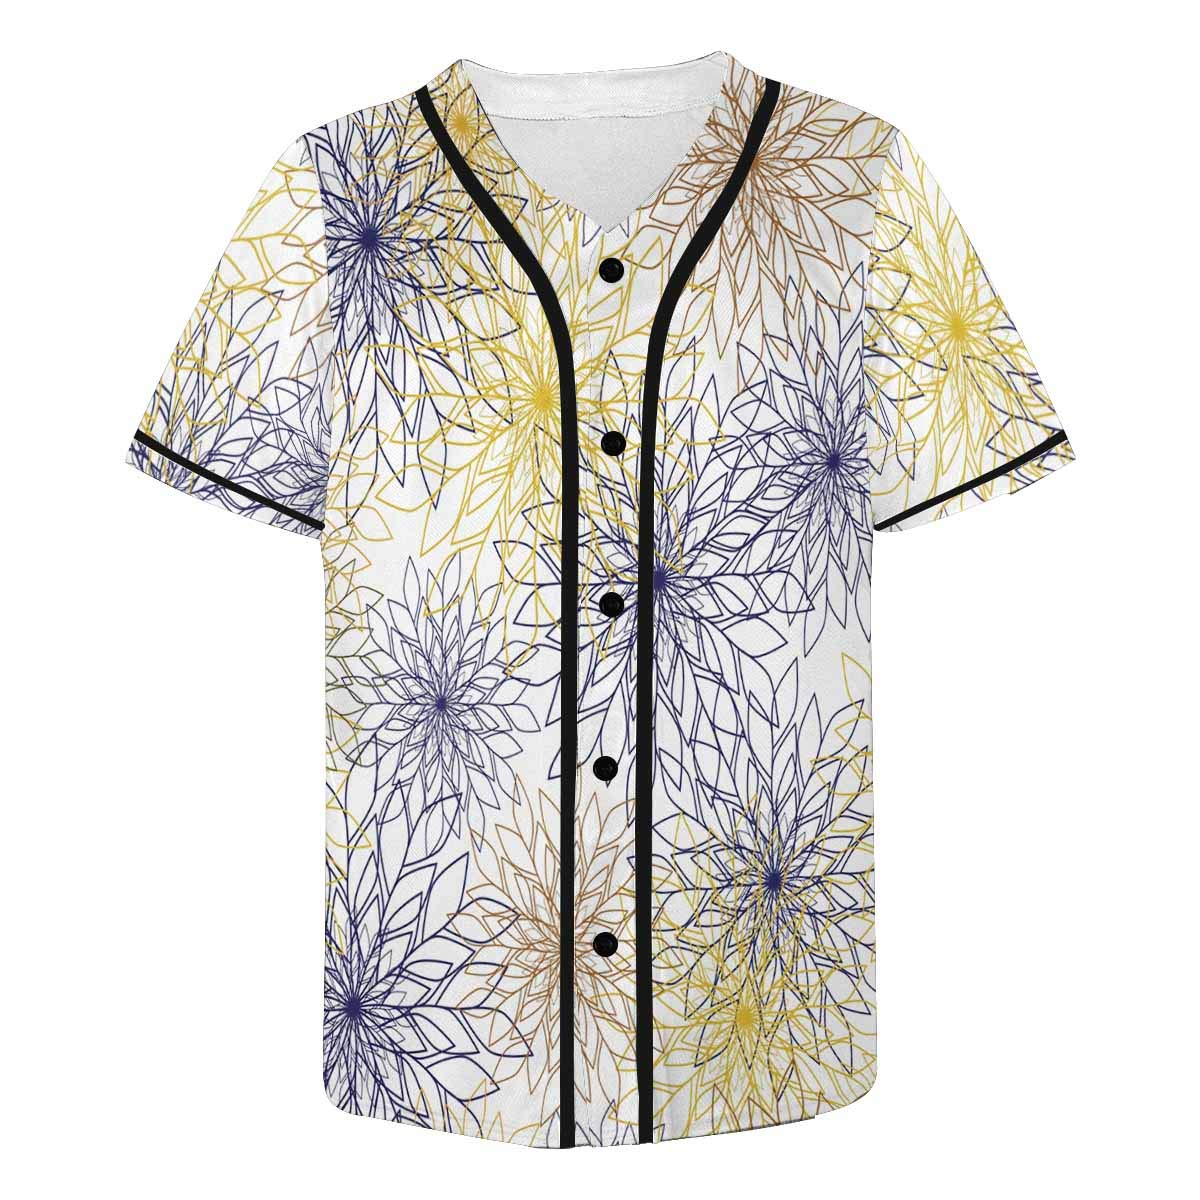 INTERESTPRINT Mens Fashion Baseball Jersey T-Shirt